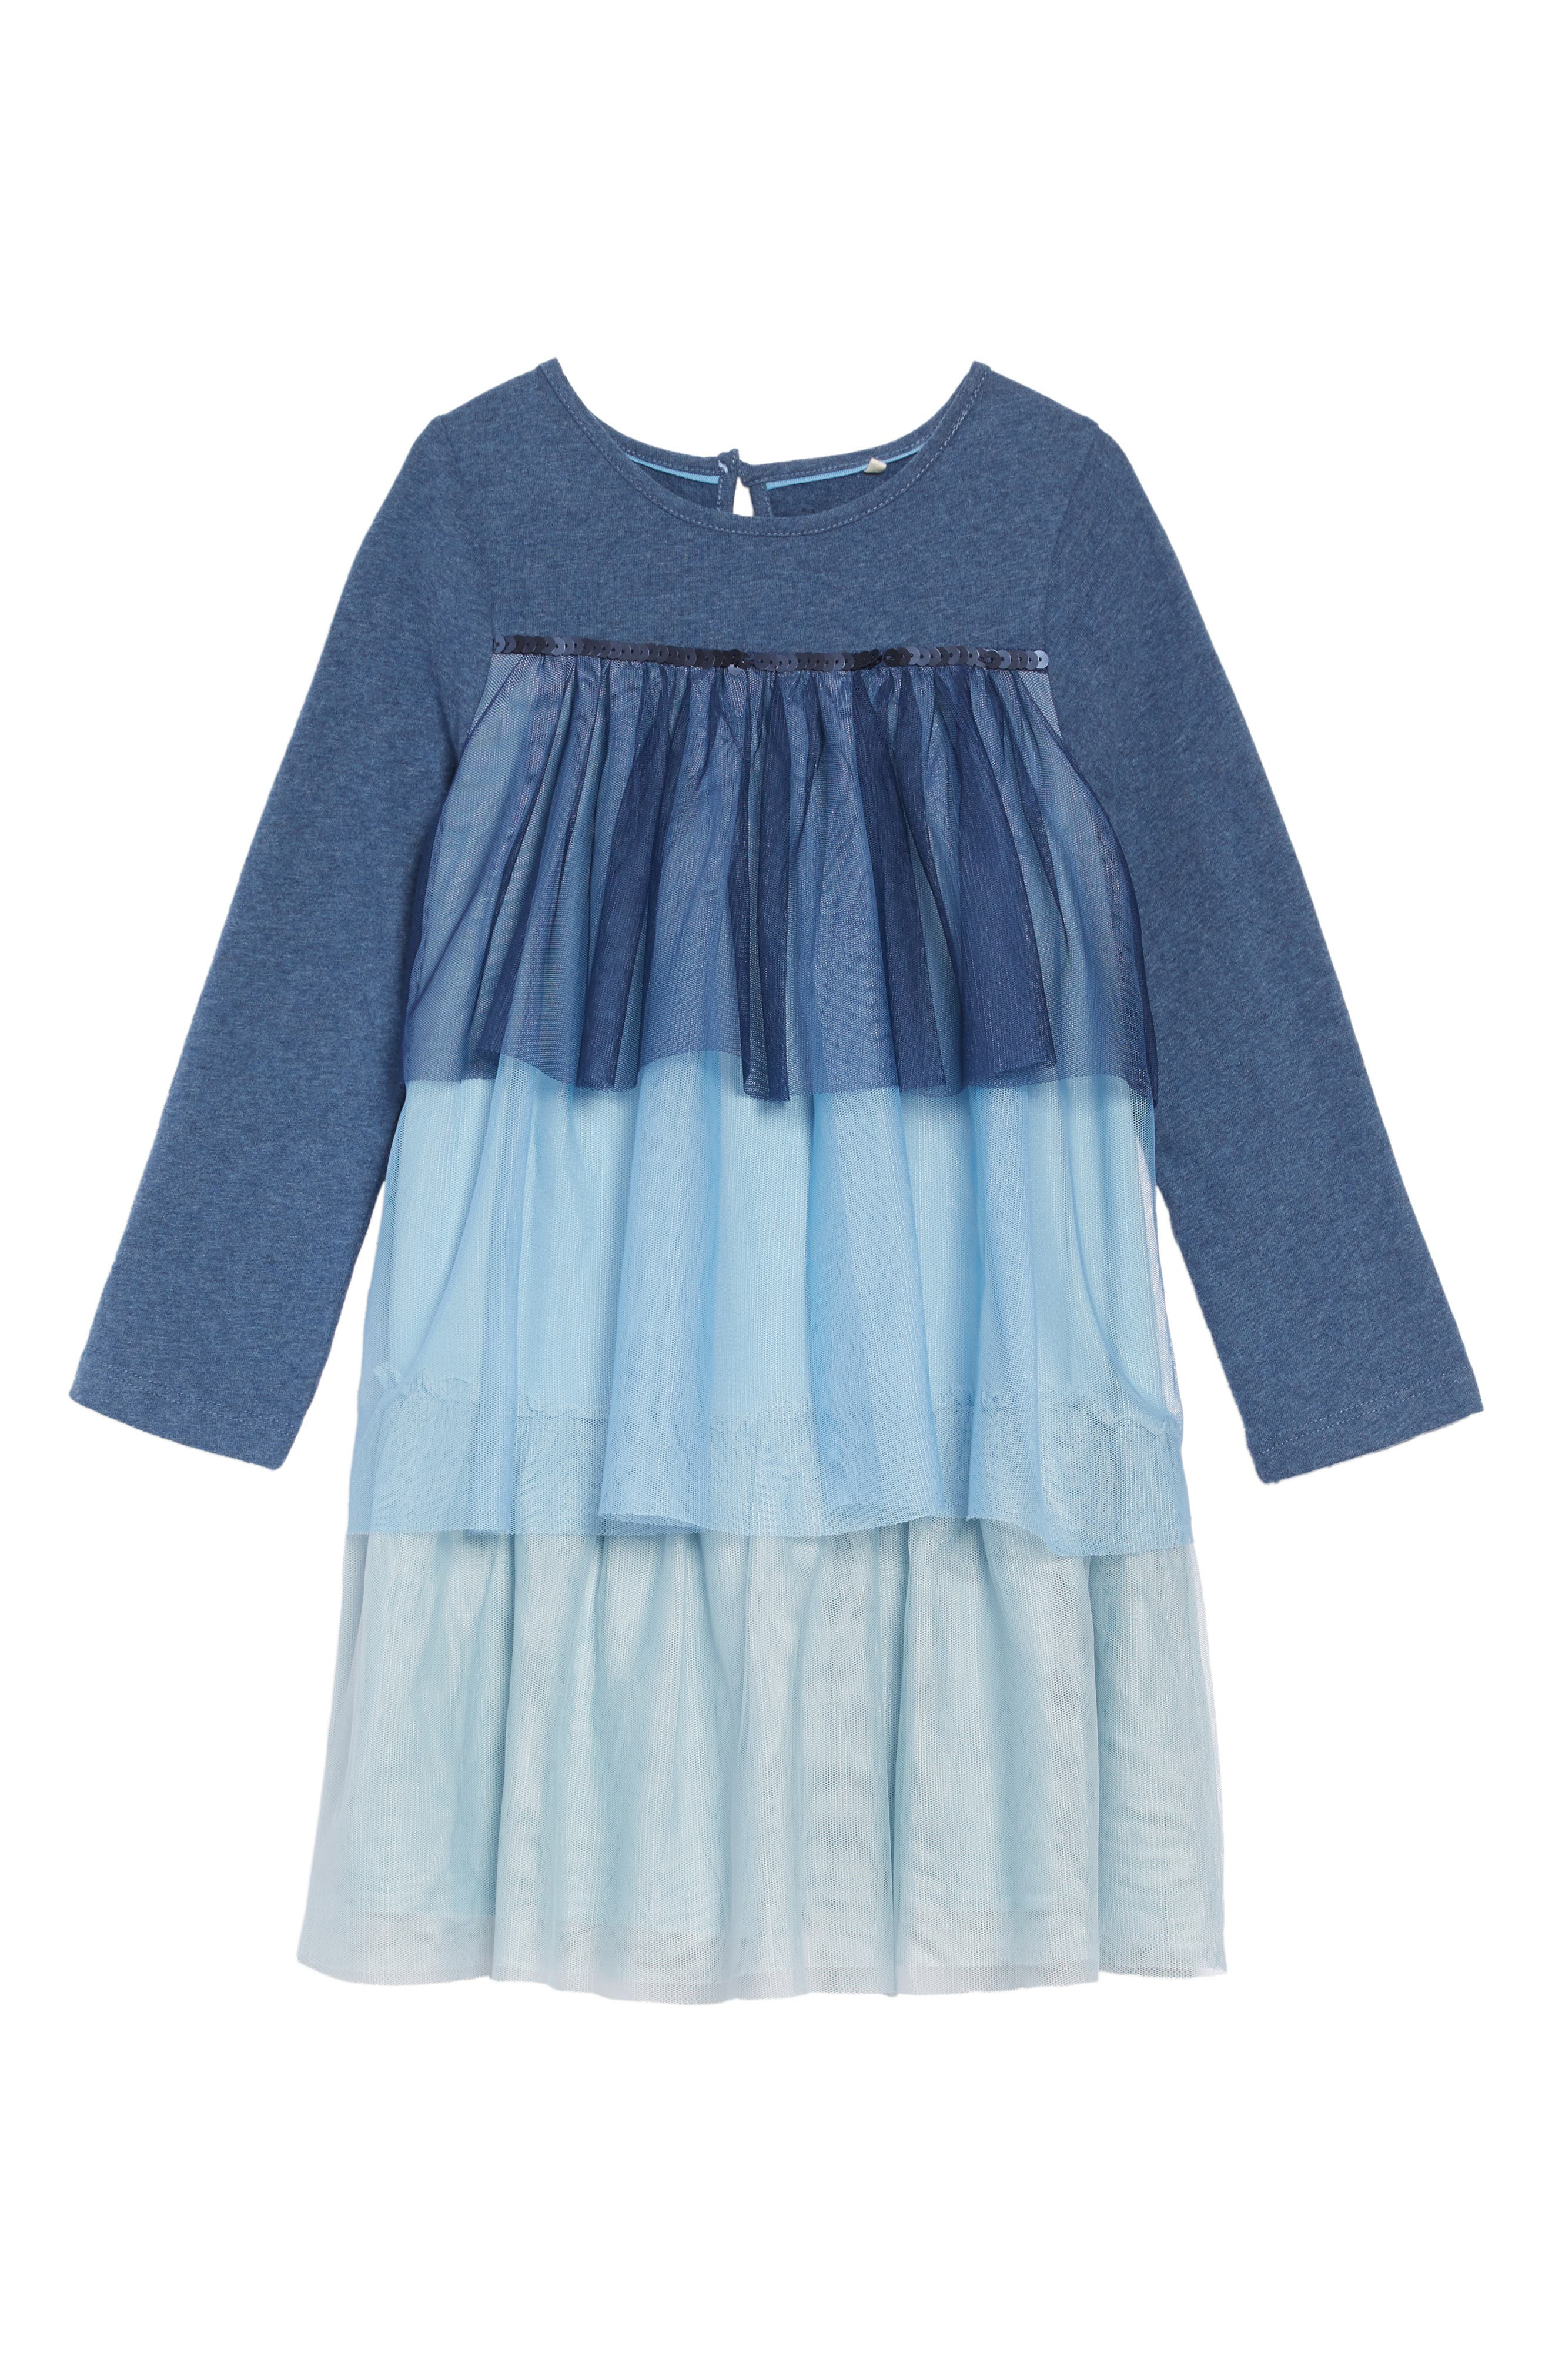 Jersey & Tulle Dress,                         Main,                         color, SCHOOL NAVY OMBRE